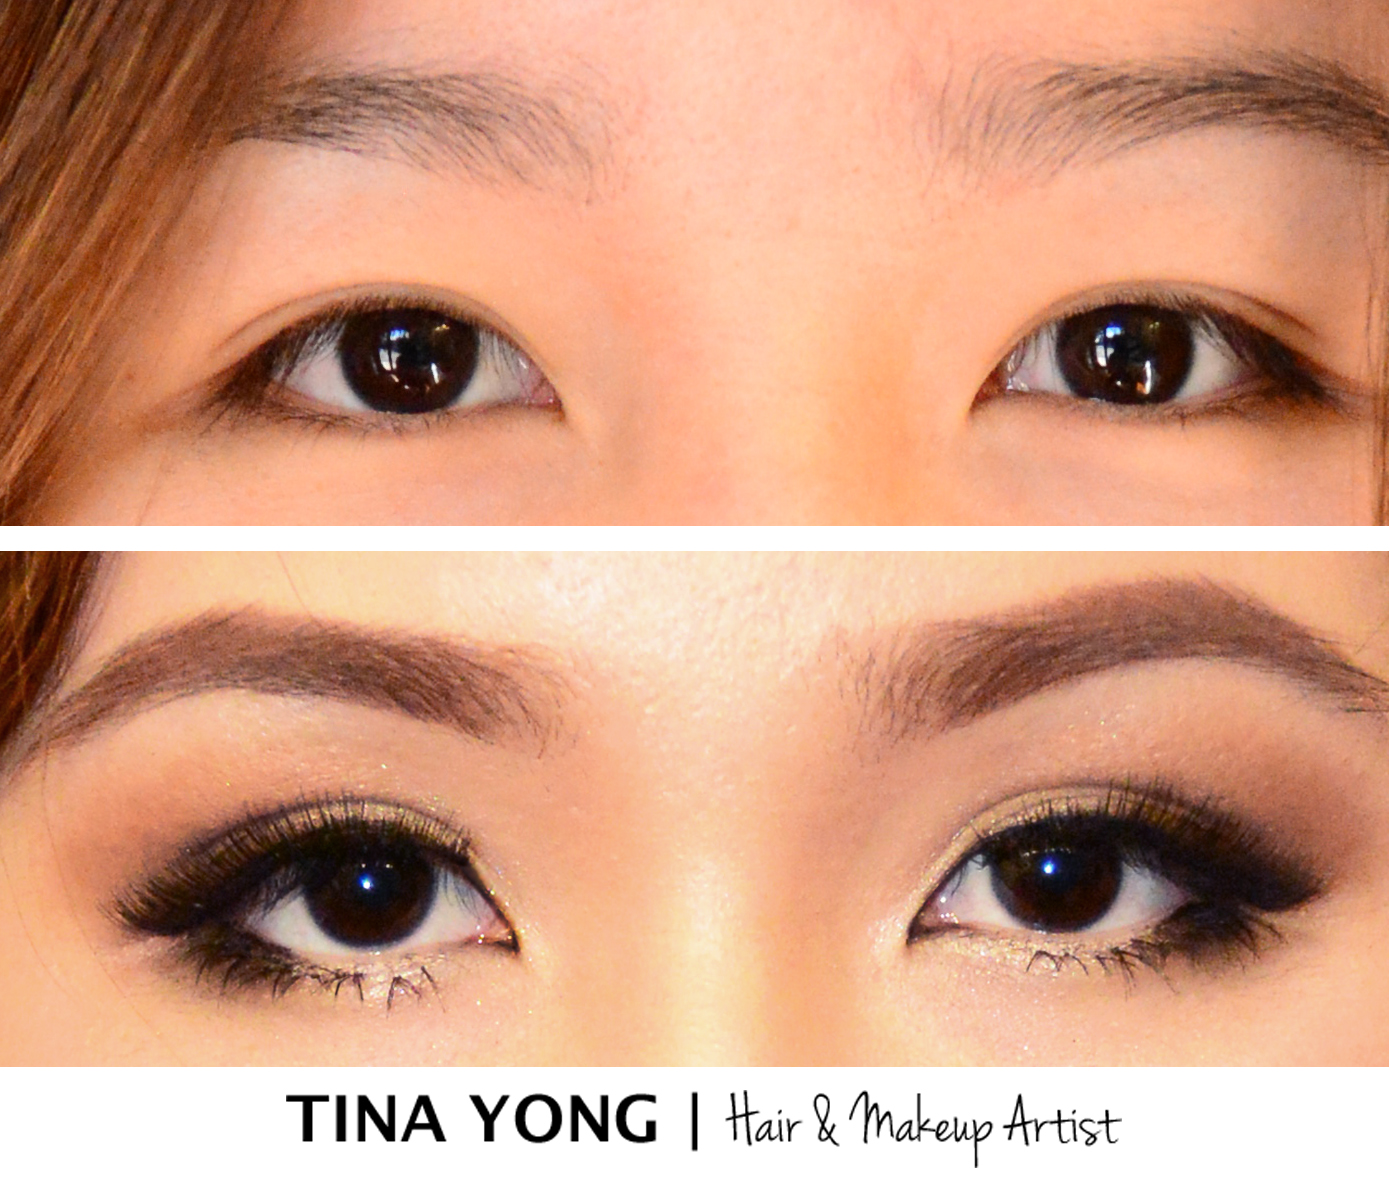 Uneven eyelids tina yong makeup and hair by tina yong beforeaftertemplate baditri Gallery